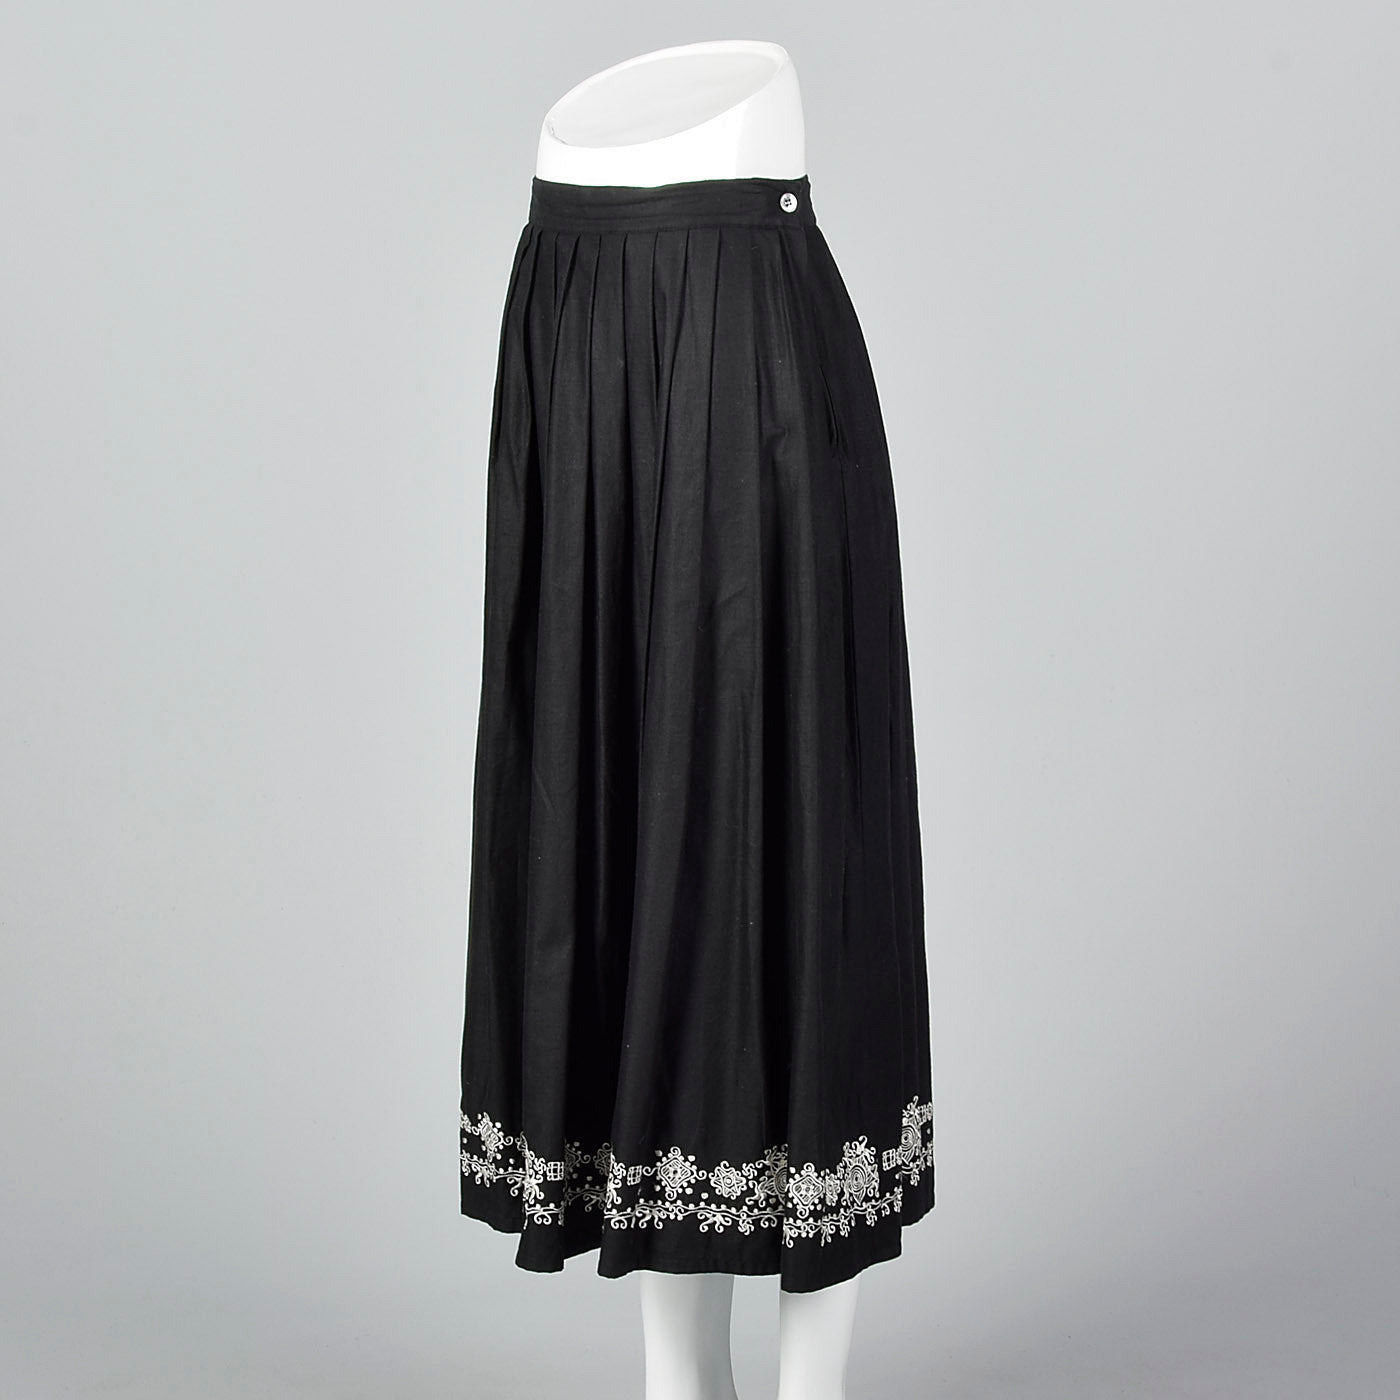 1990s Anne Klein A Line Black Skirt with Embroidered Border